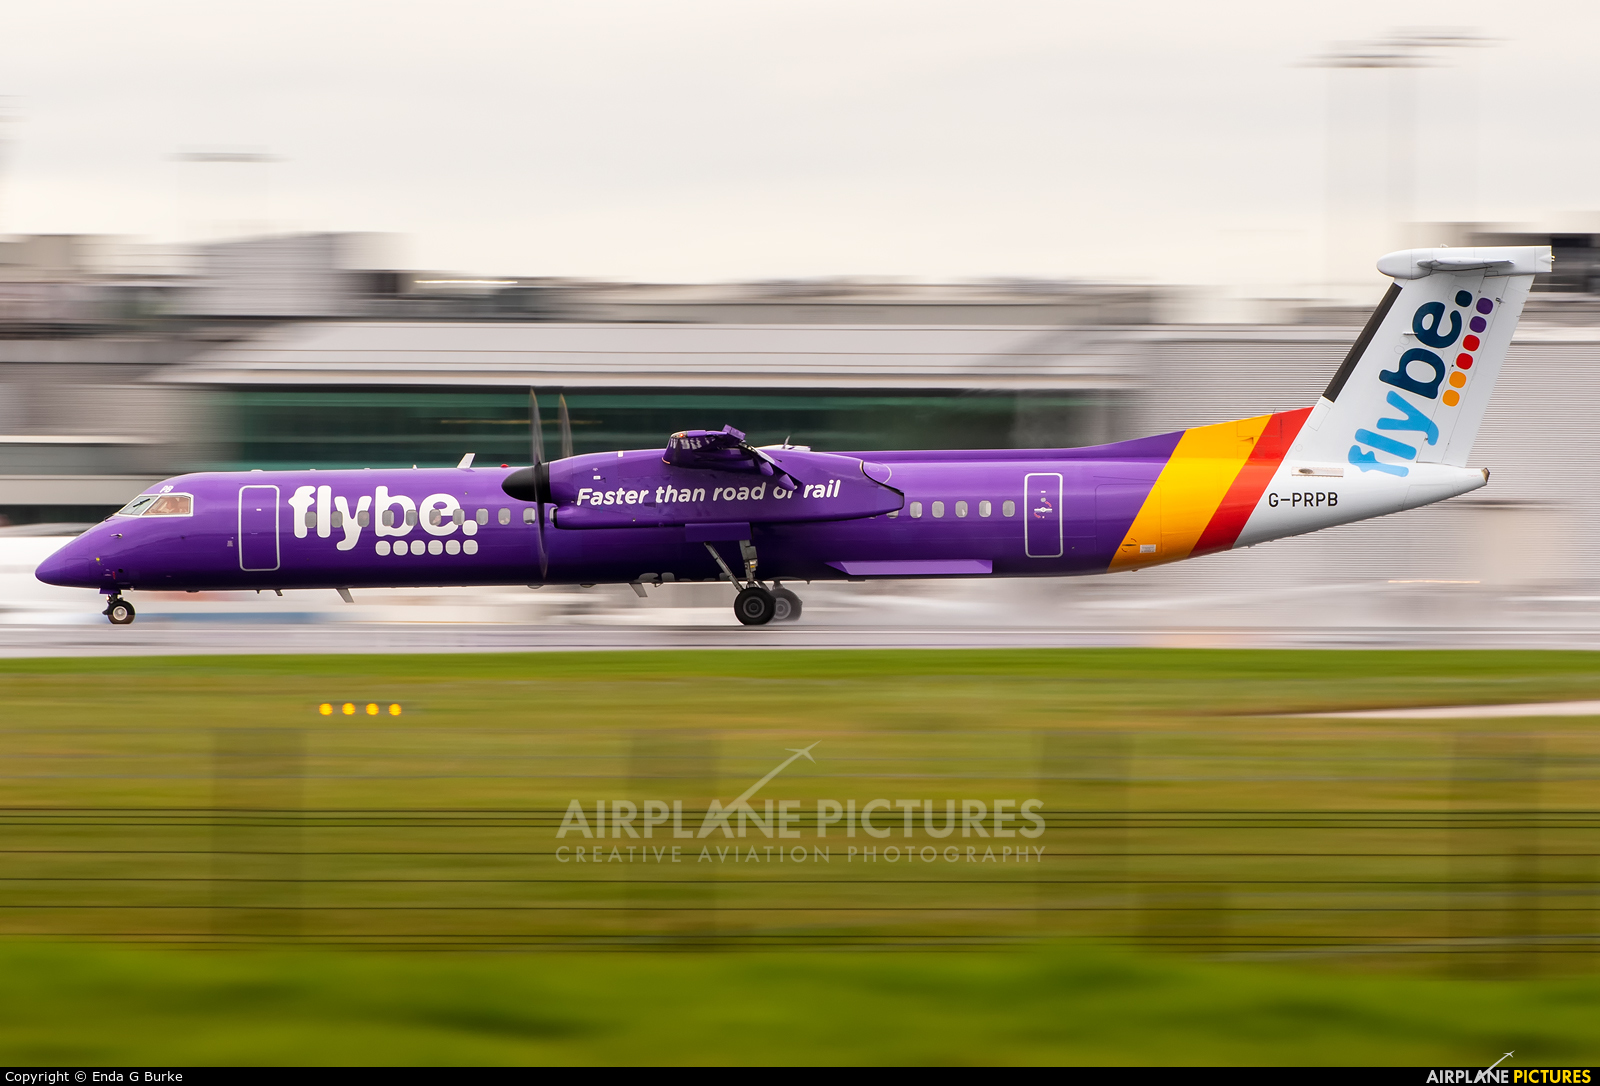 Flybe G-PRPB aircraft at Manchester